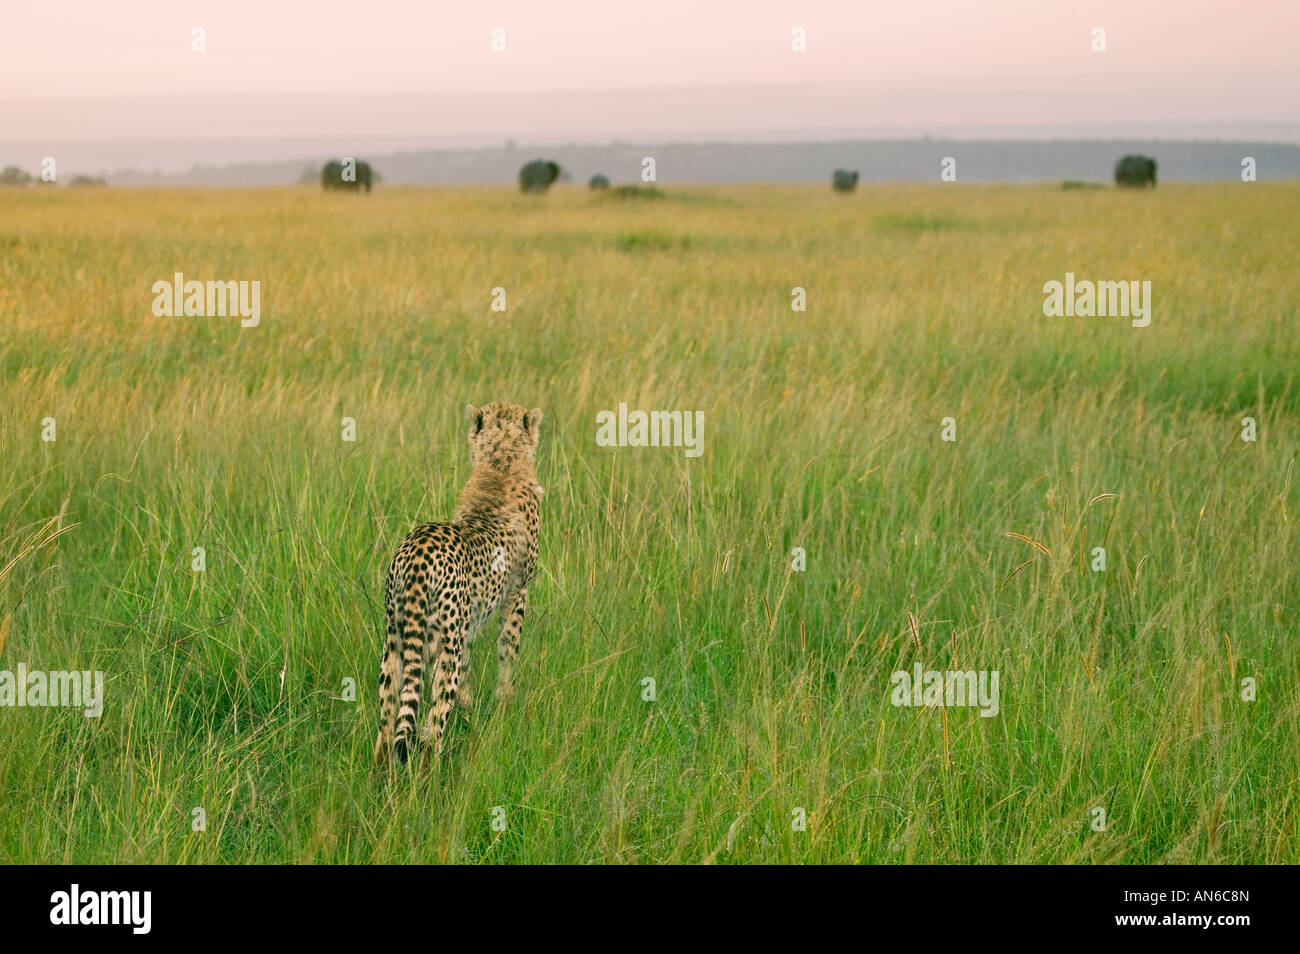 Cheetah (Acinonyx jubatus) on the savannah, Masai Mara, Kenya - Stock Image